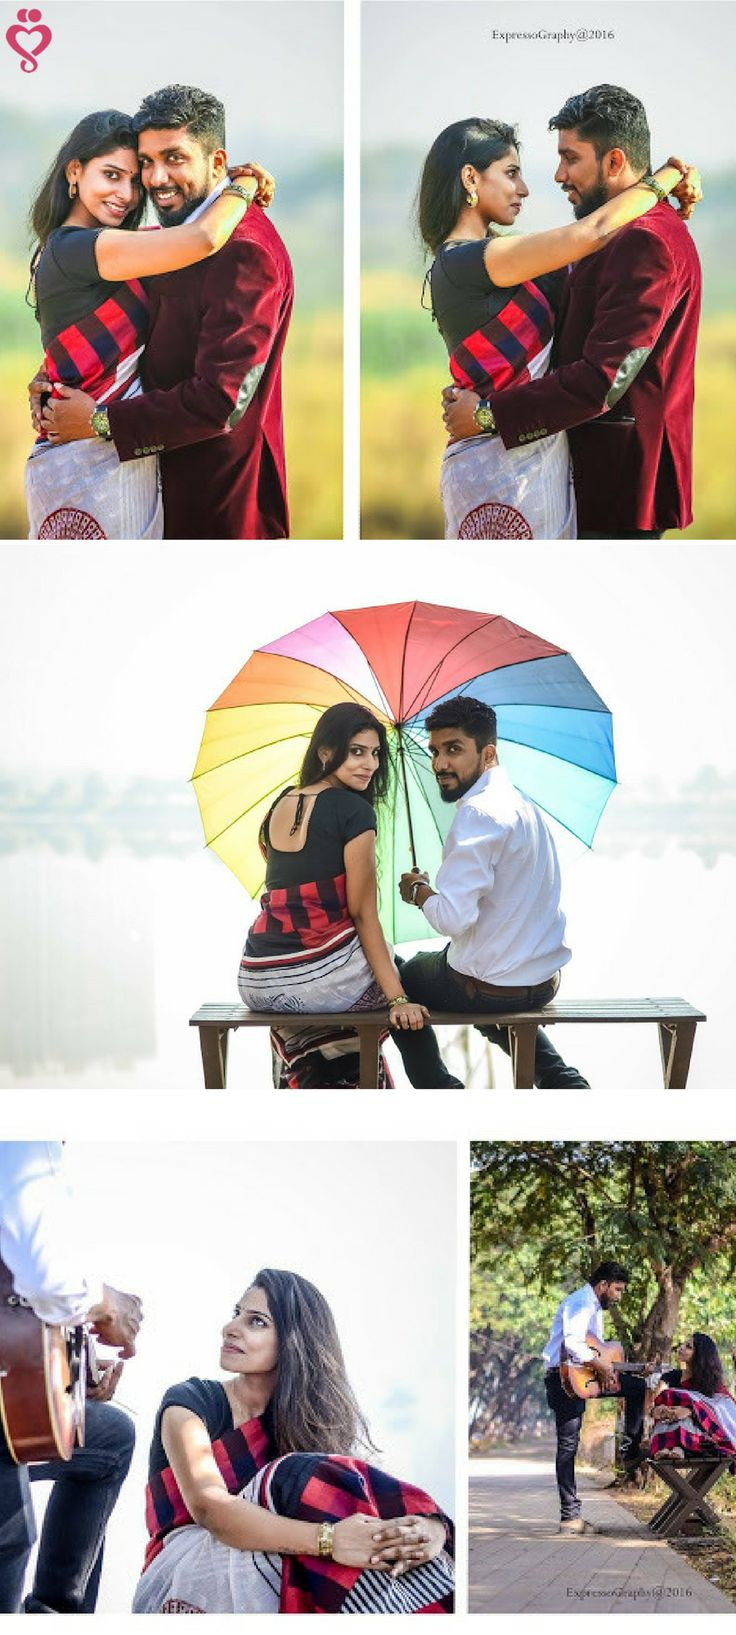 Love Story Shot - Bride and Groom in a Nice Outfits. With colorful umbrella they on pre-wedding shoot. Best Locations WeddingNet #weddingnet #indianwedding #lovestory #photoshoot #inspiration #couple #love #destination #location #lovely #places